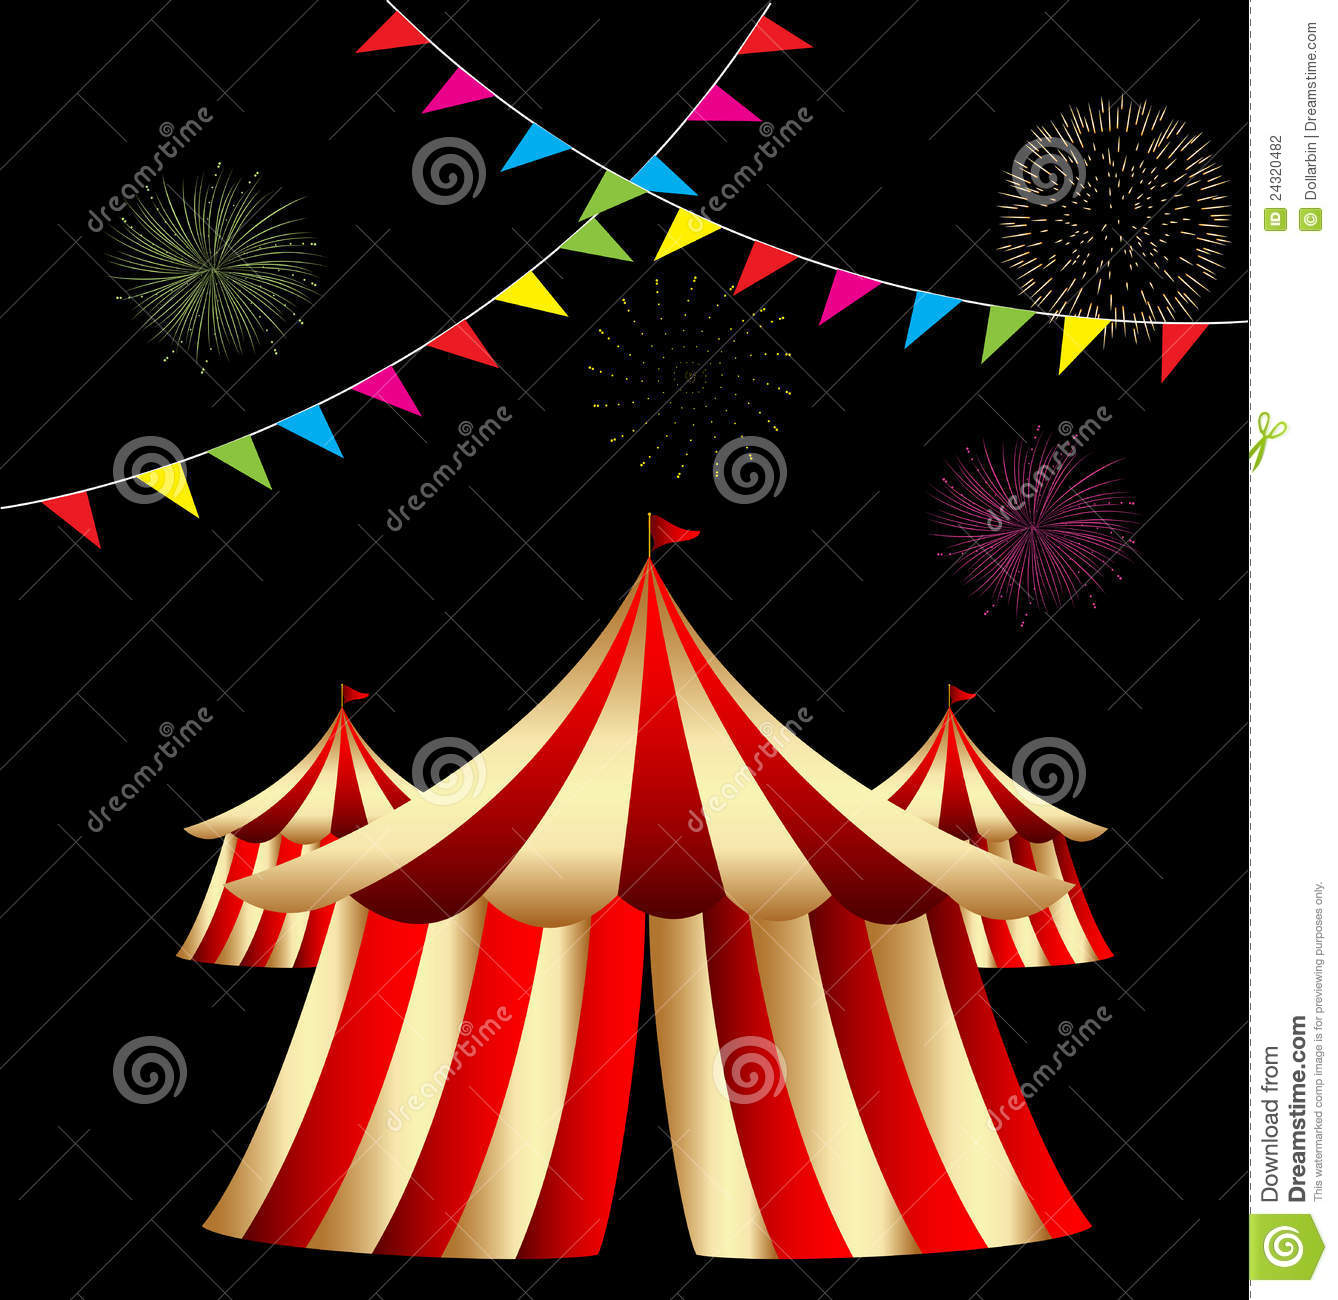 Circus Tent  sc 1 st  Dreamstime.com & Circus Tent stock vector. Illustration of cloud revival - 24320482